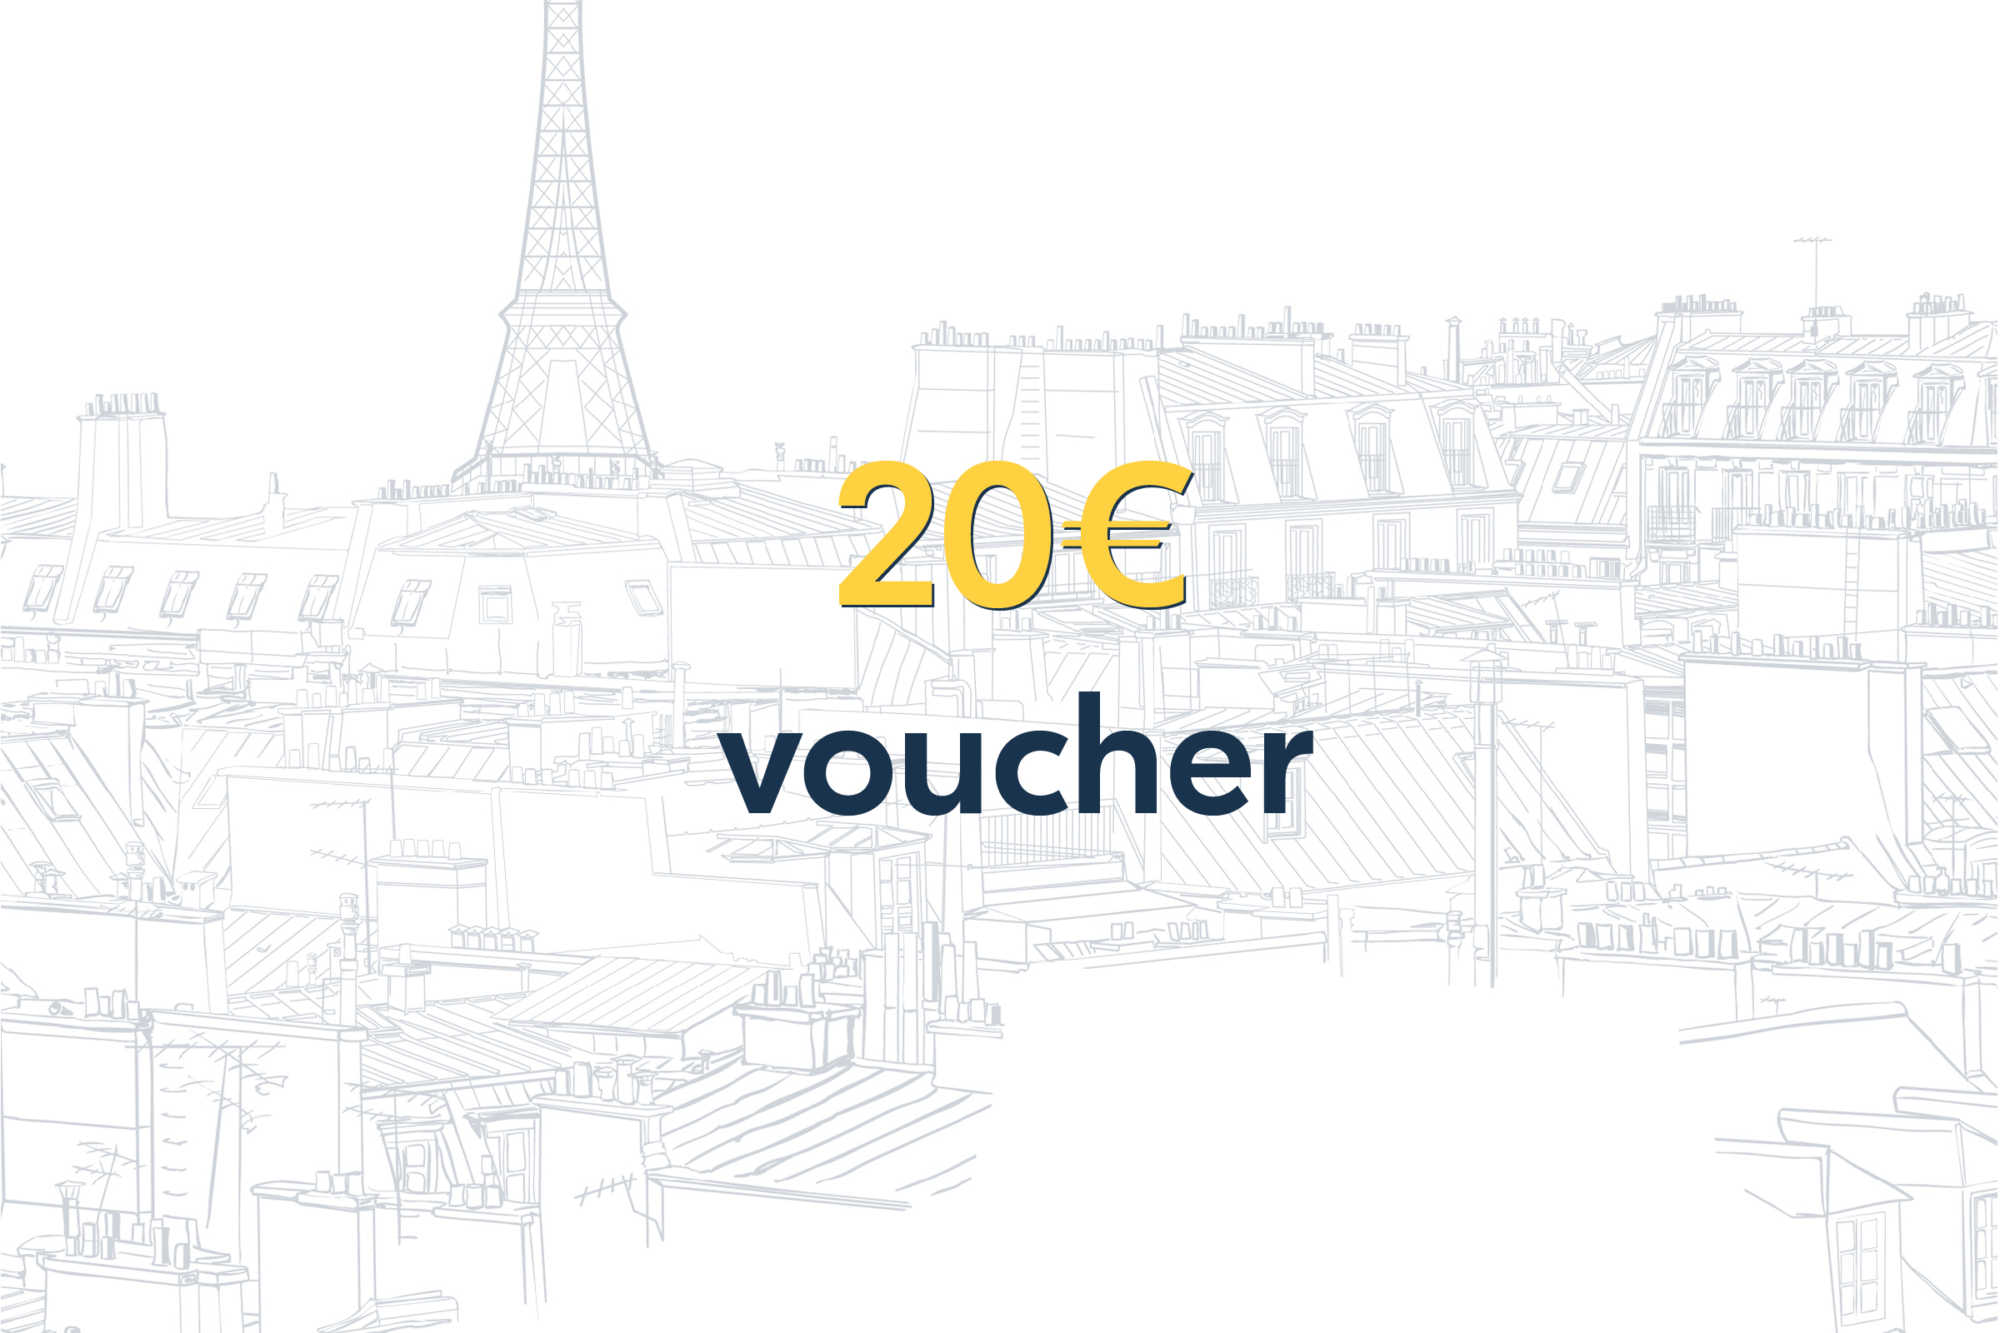 TheWaysBeyond - Voucher 20€